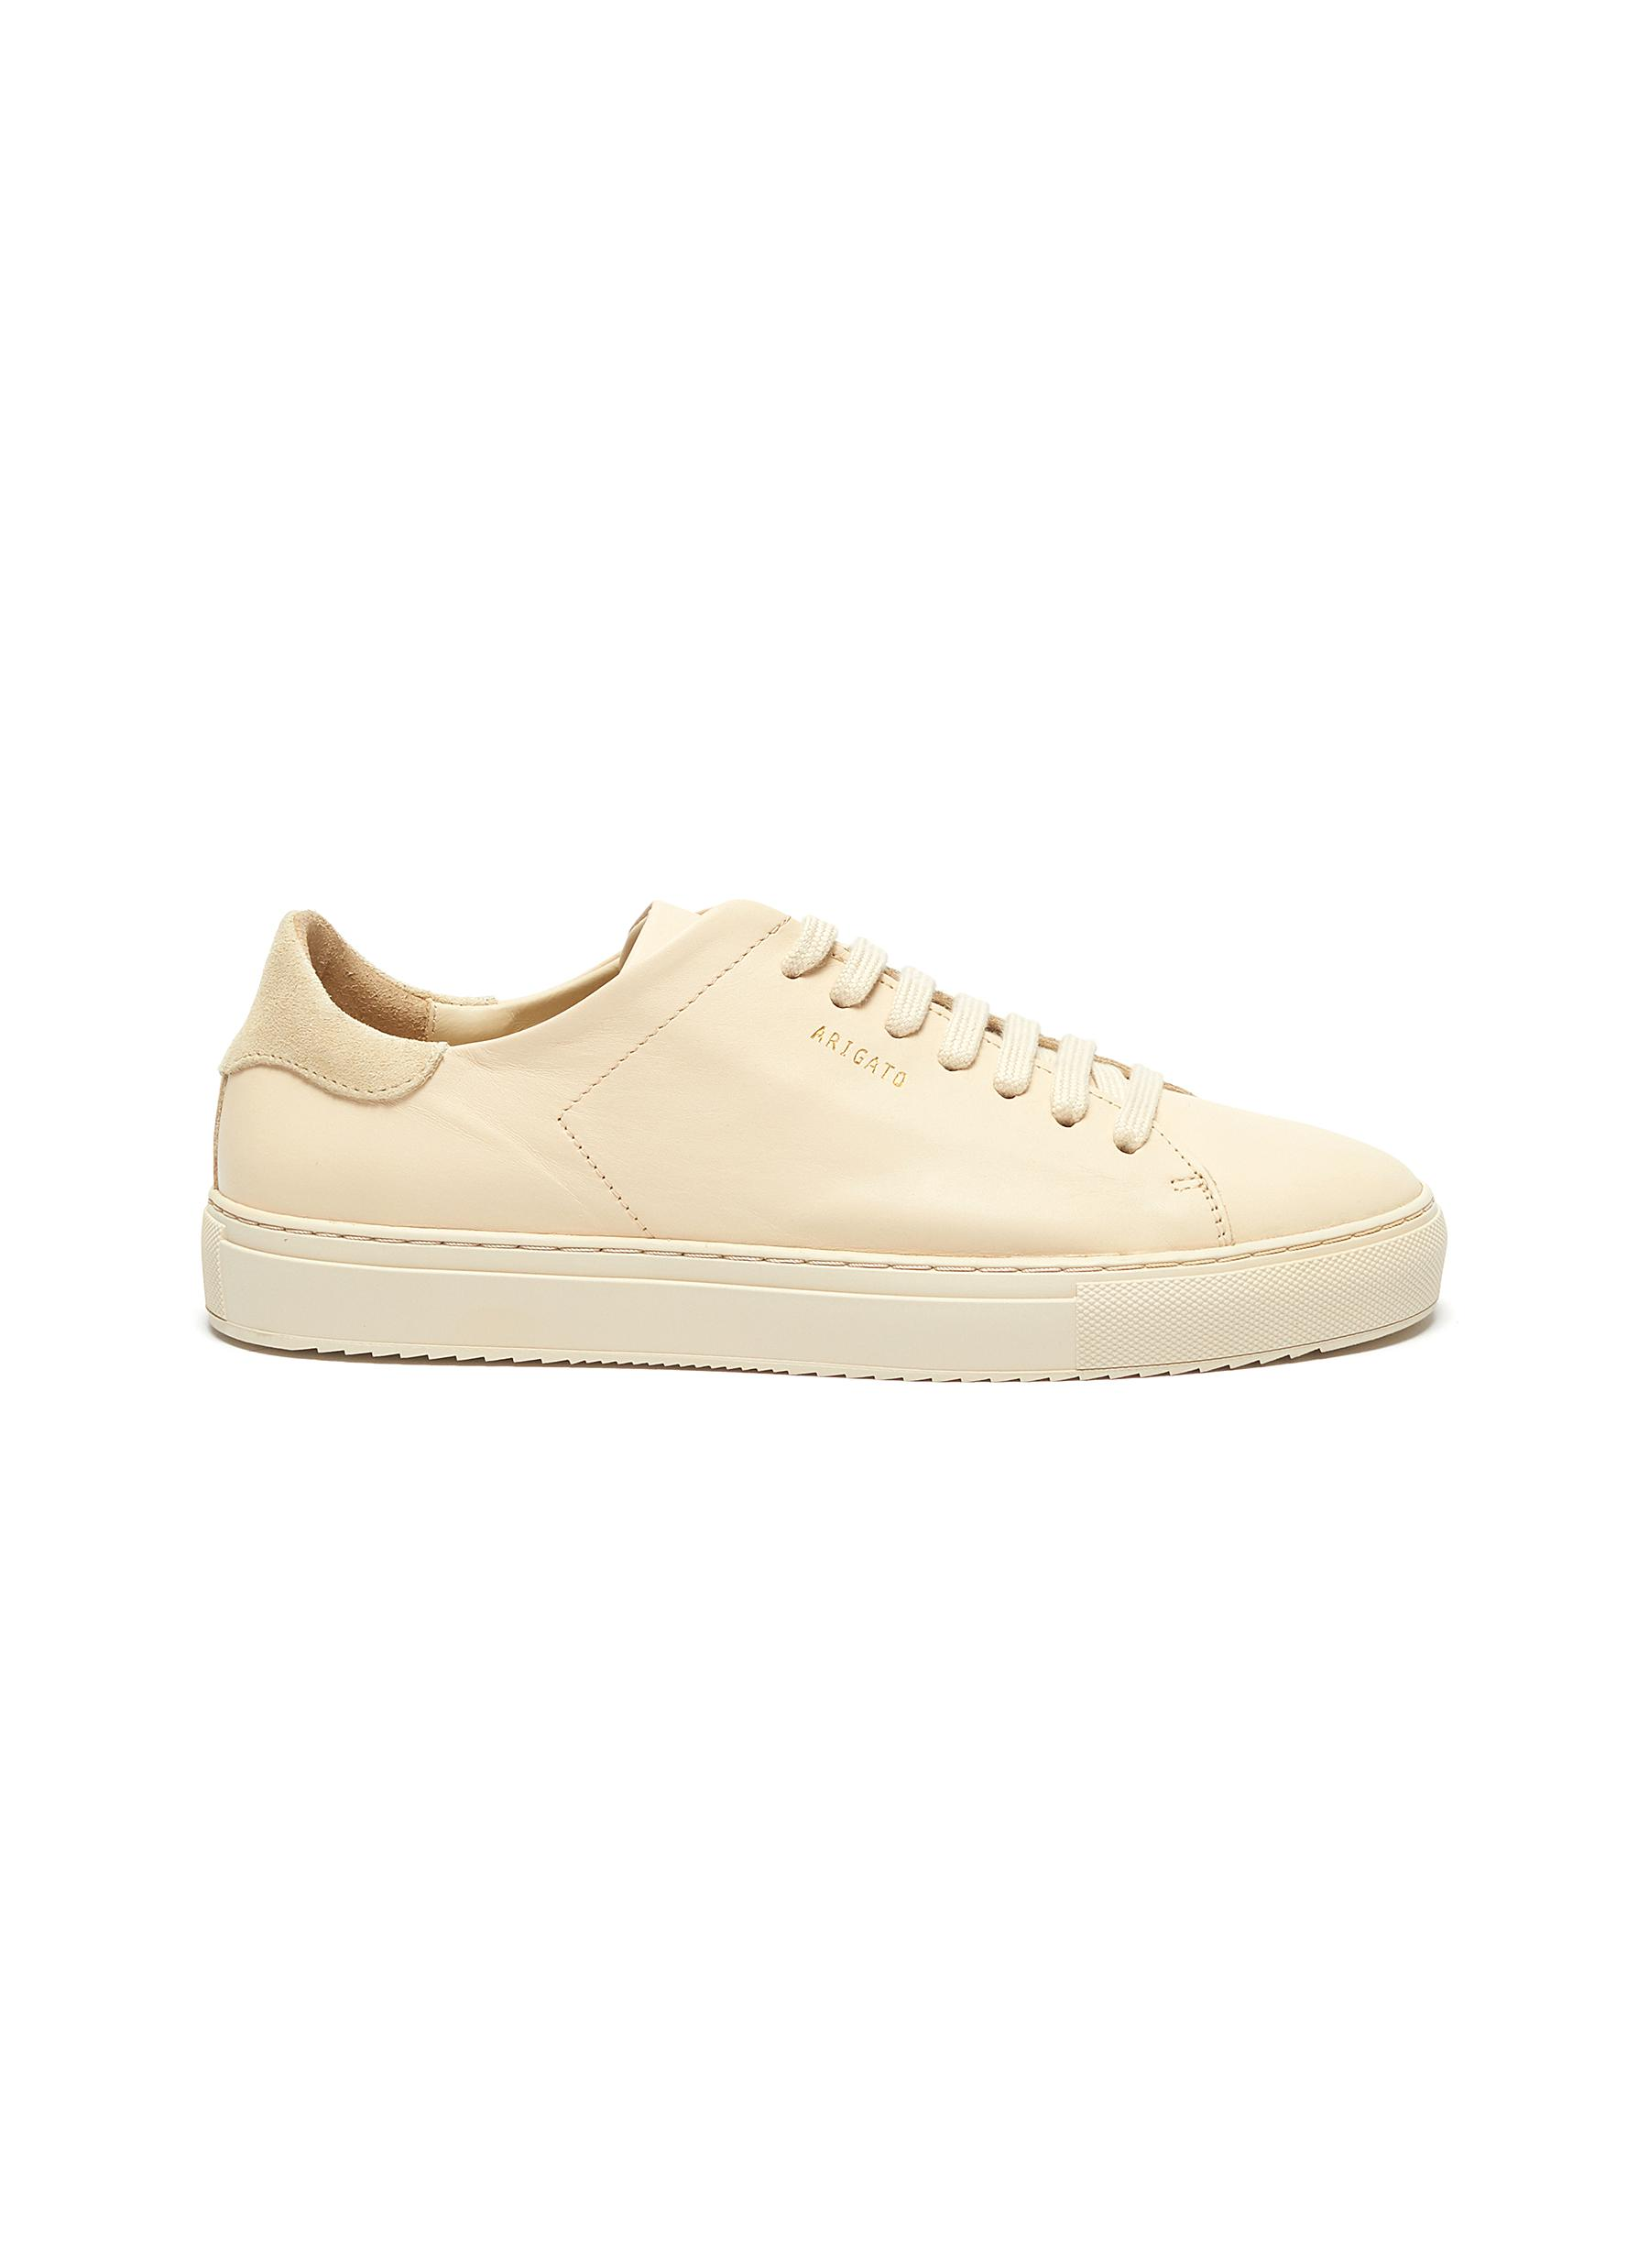 shop Axel Arigato 'Clean 90' leather sneakers online